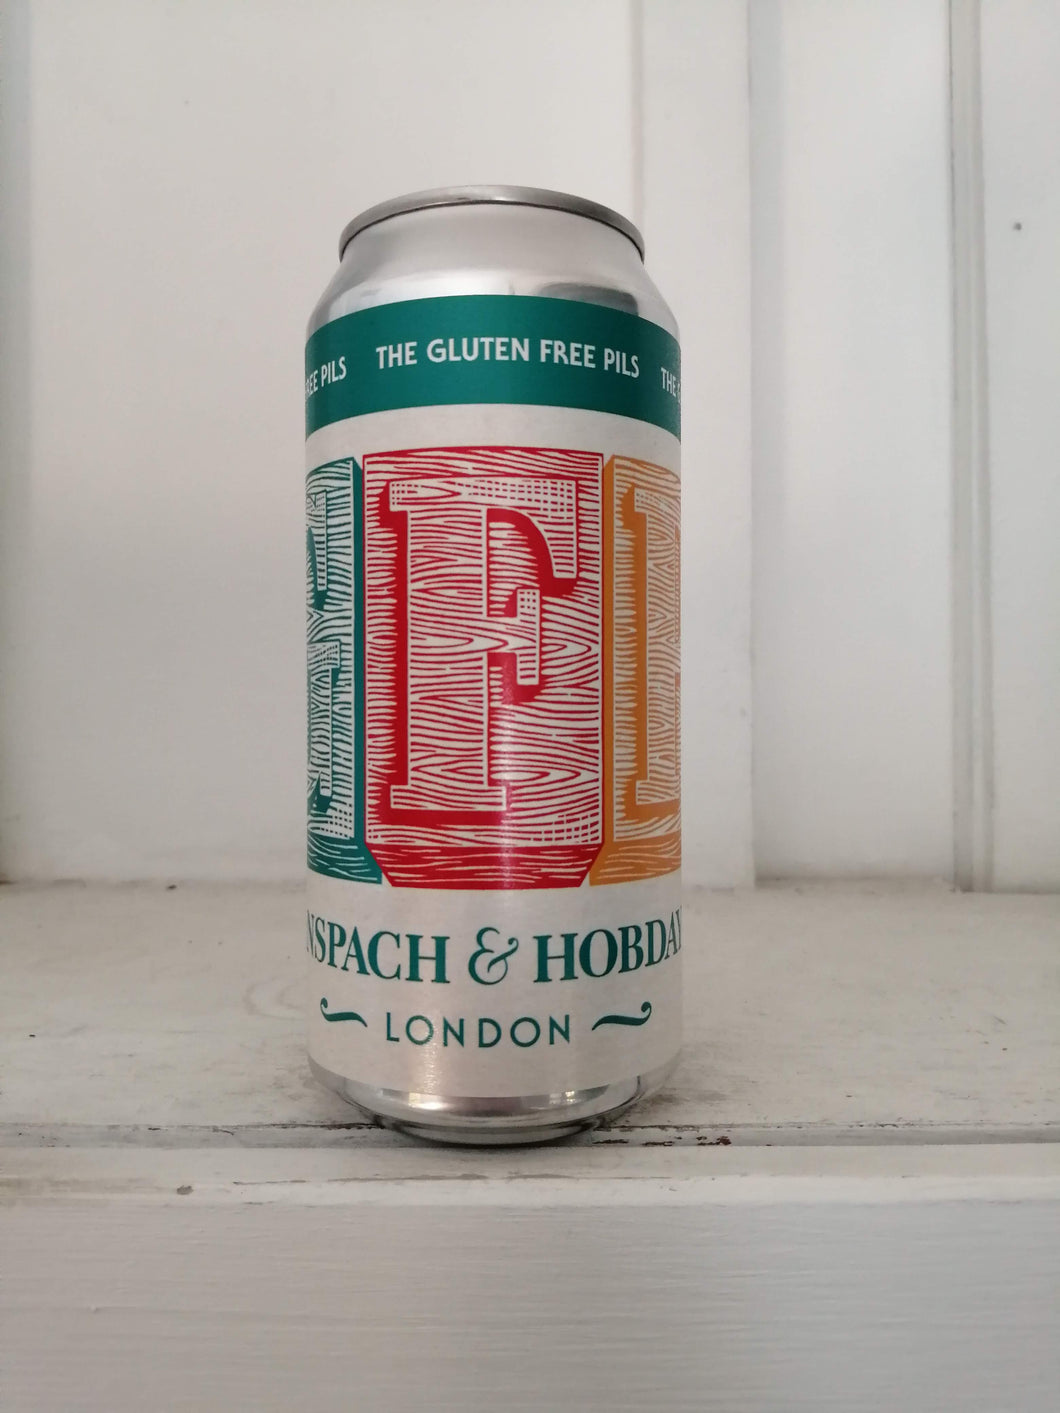 Anspach & Hobday The Gluten Free Pils 5.2% (440ml can)